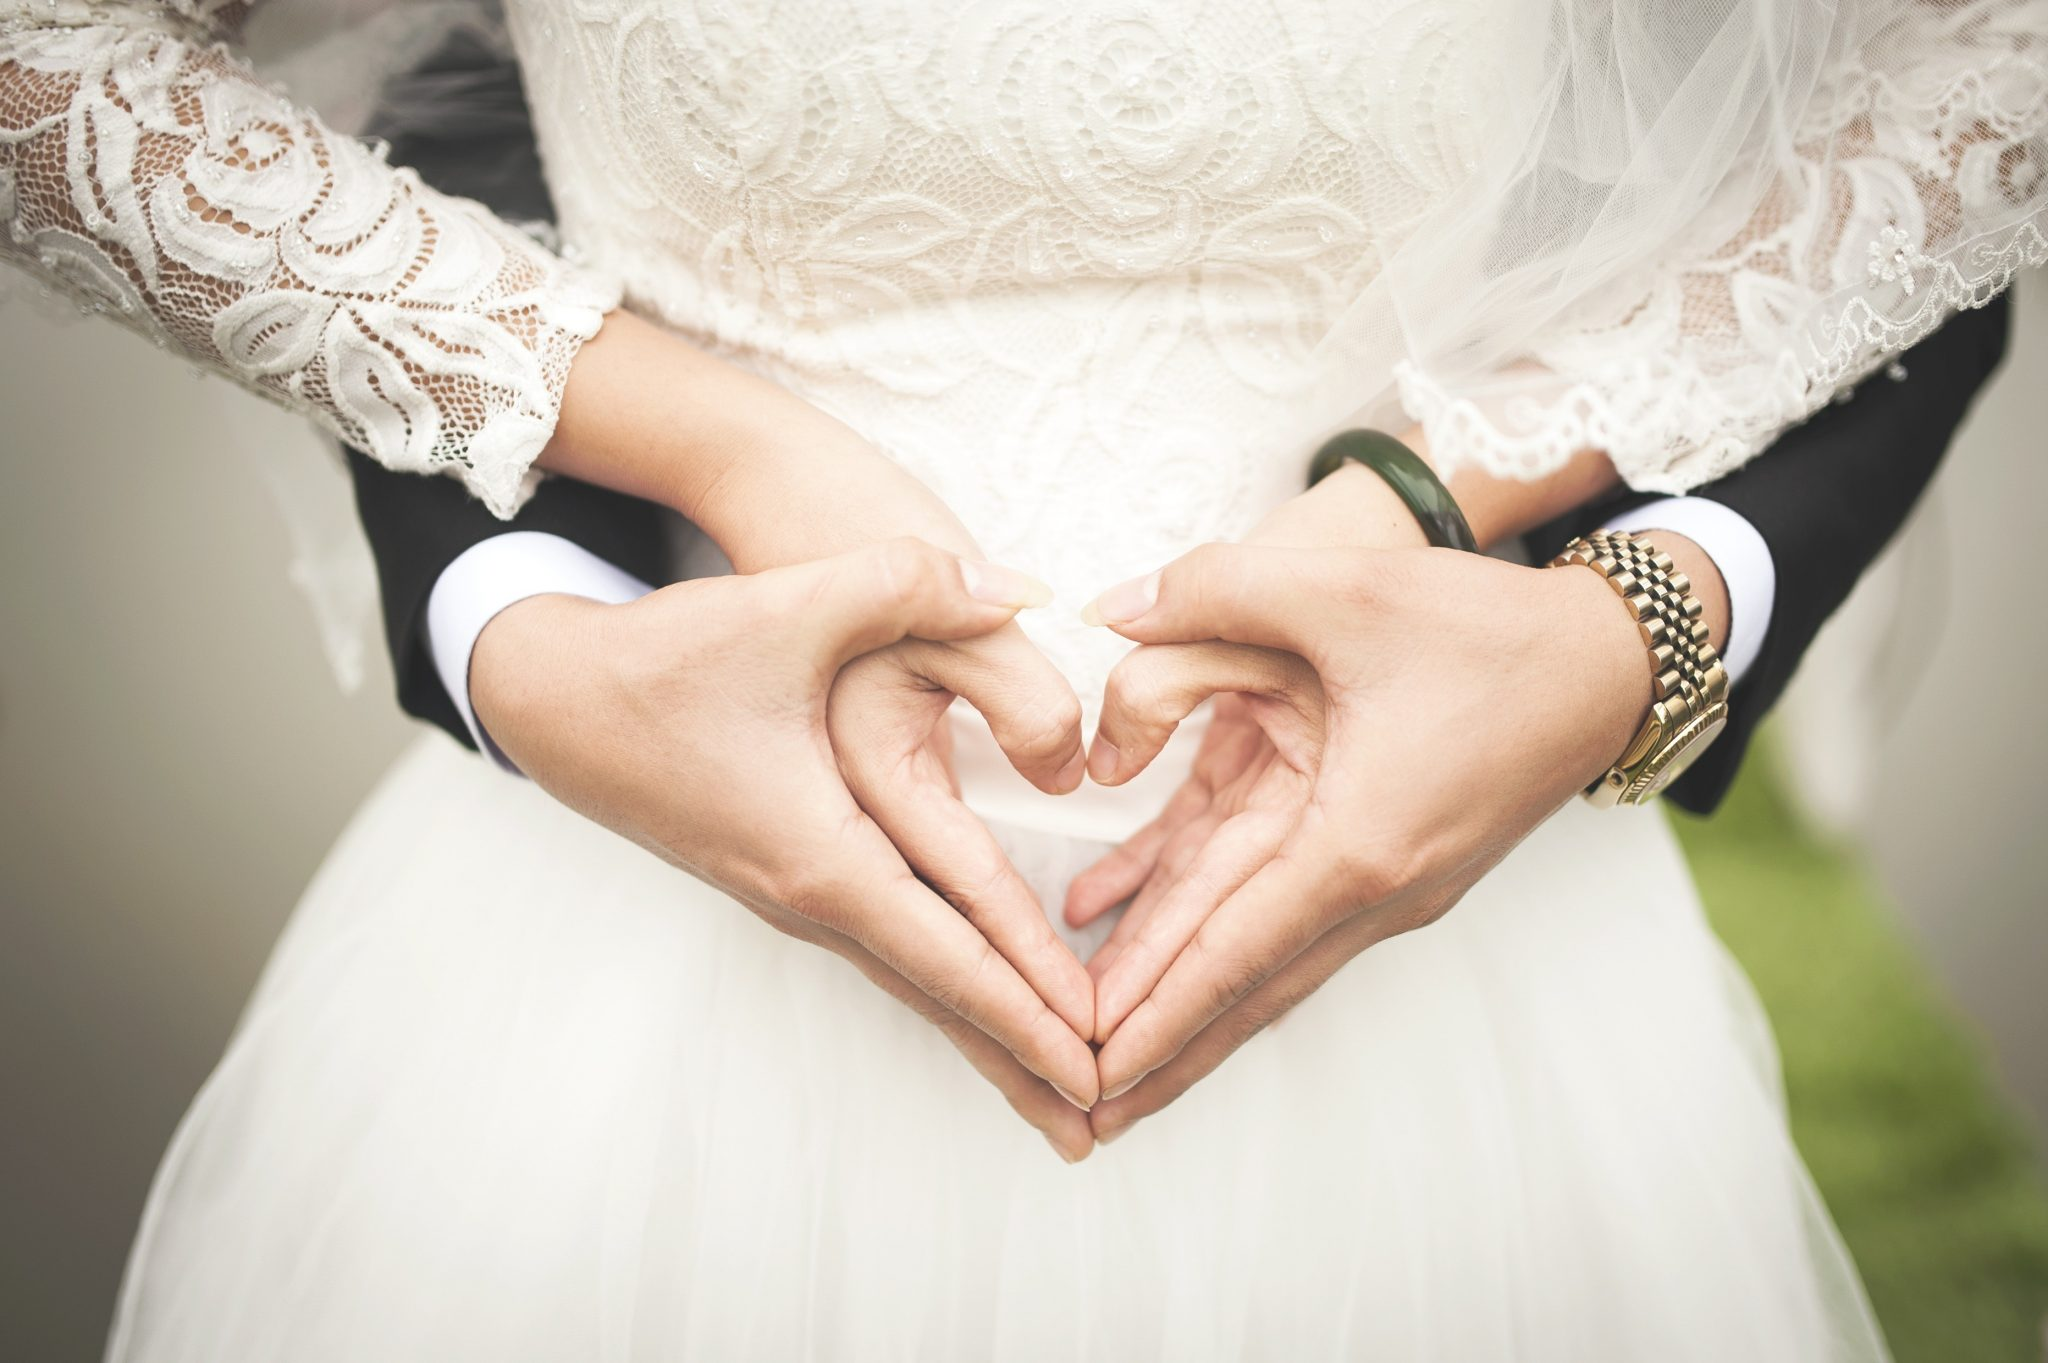 Biblical Standard to make your marriage successful - The